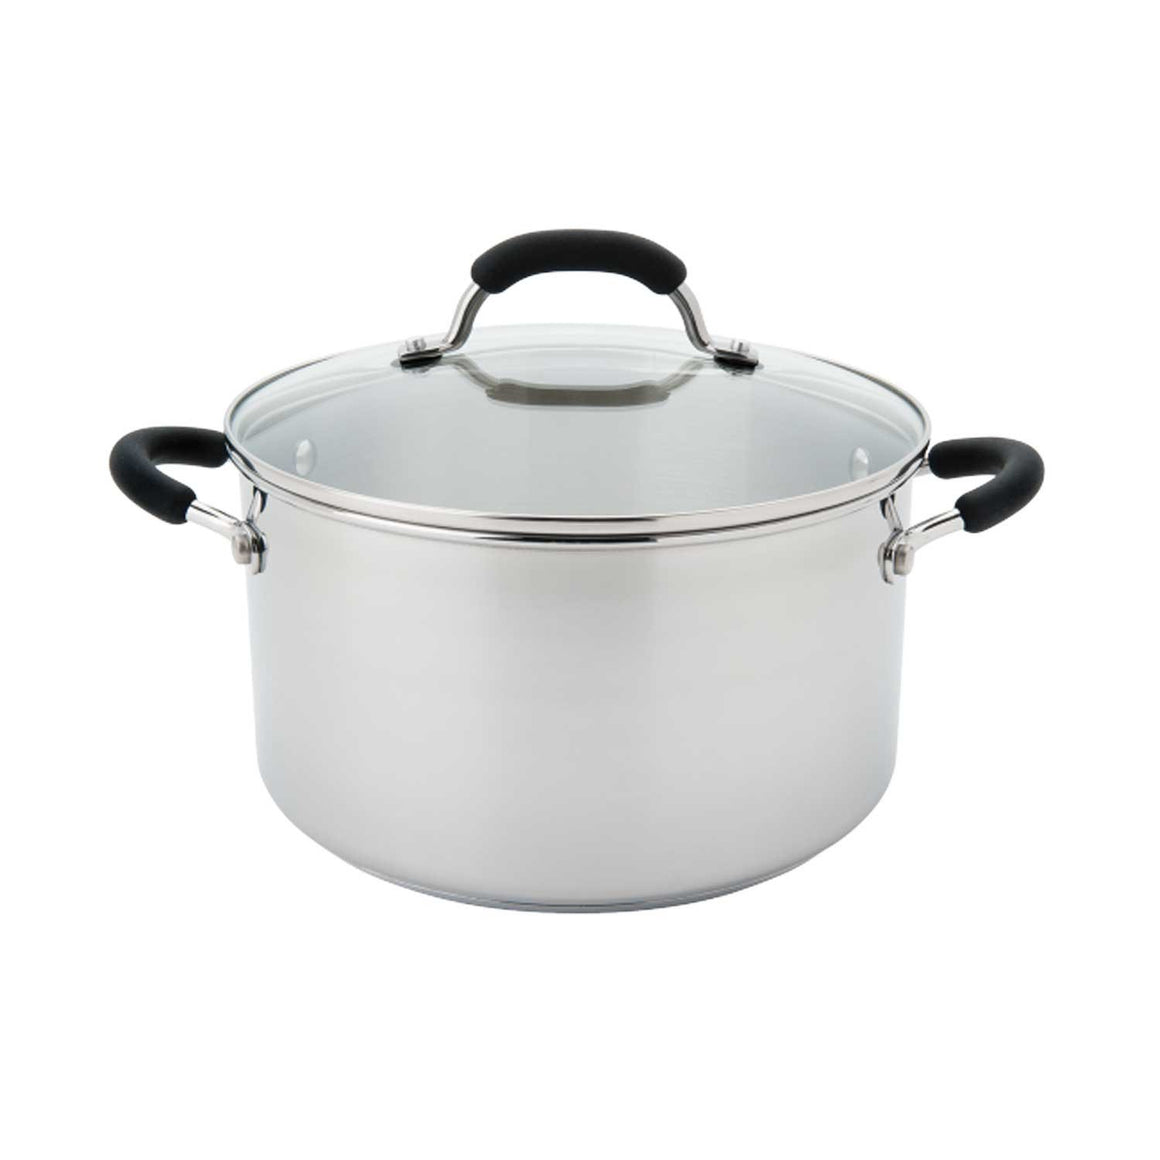 Raco Contemporary Stainless Steel Stockpot 24cm/5.7L - stuff-n-things